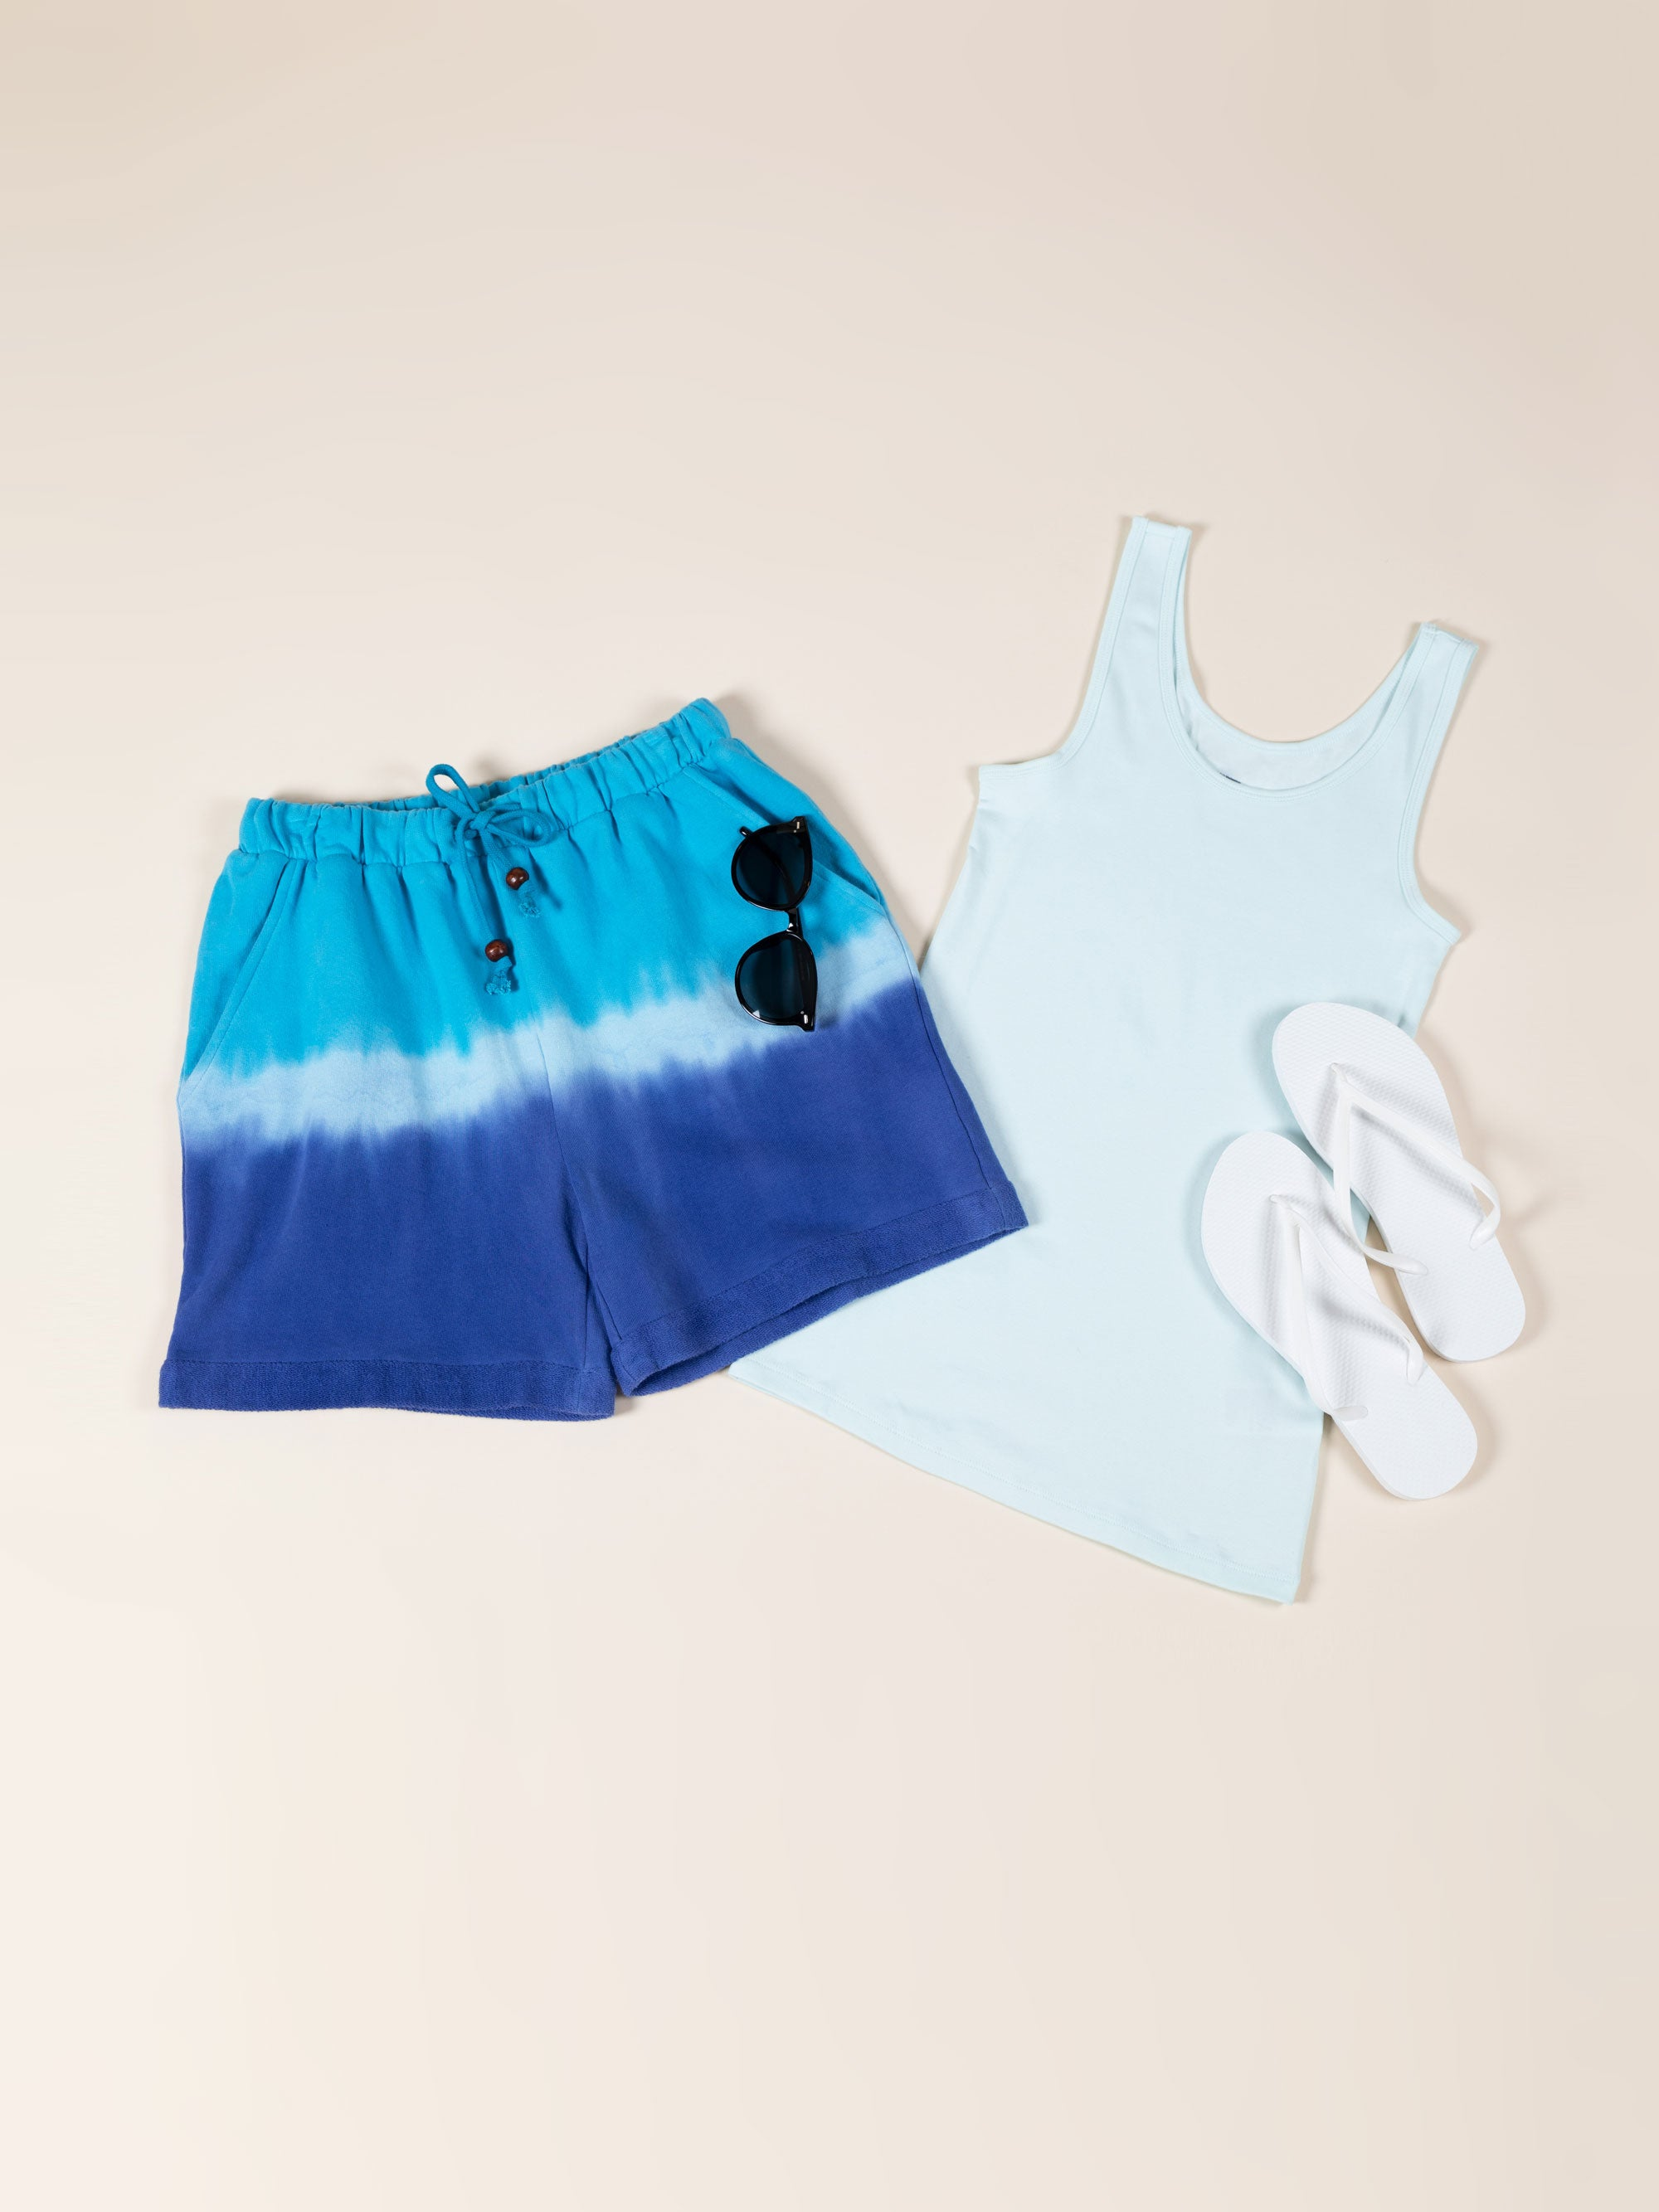 A pair of hand-dyed shorts are positioned to the left of a brightly-colored tank top and white flip-flops